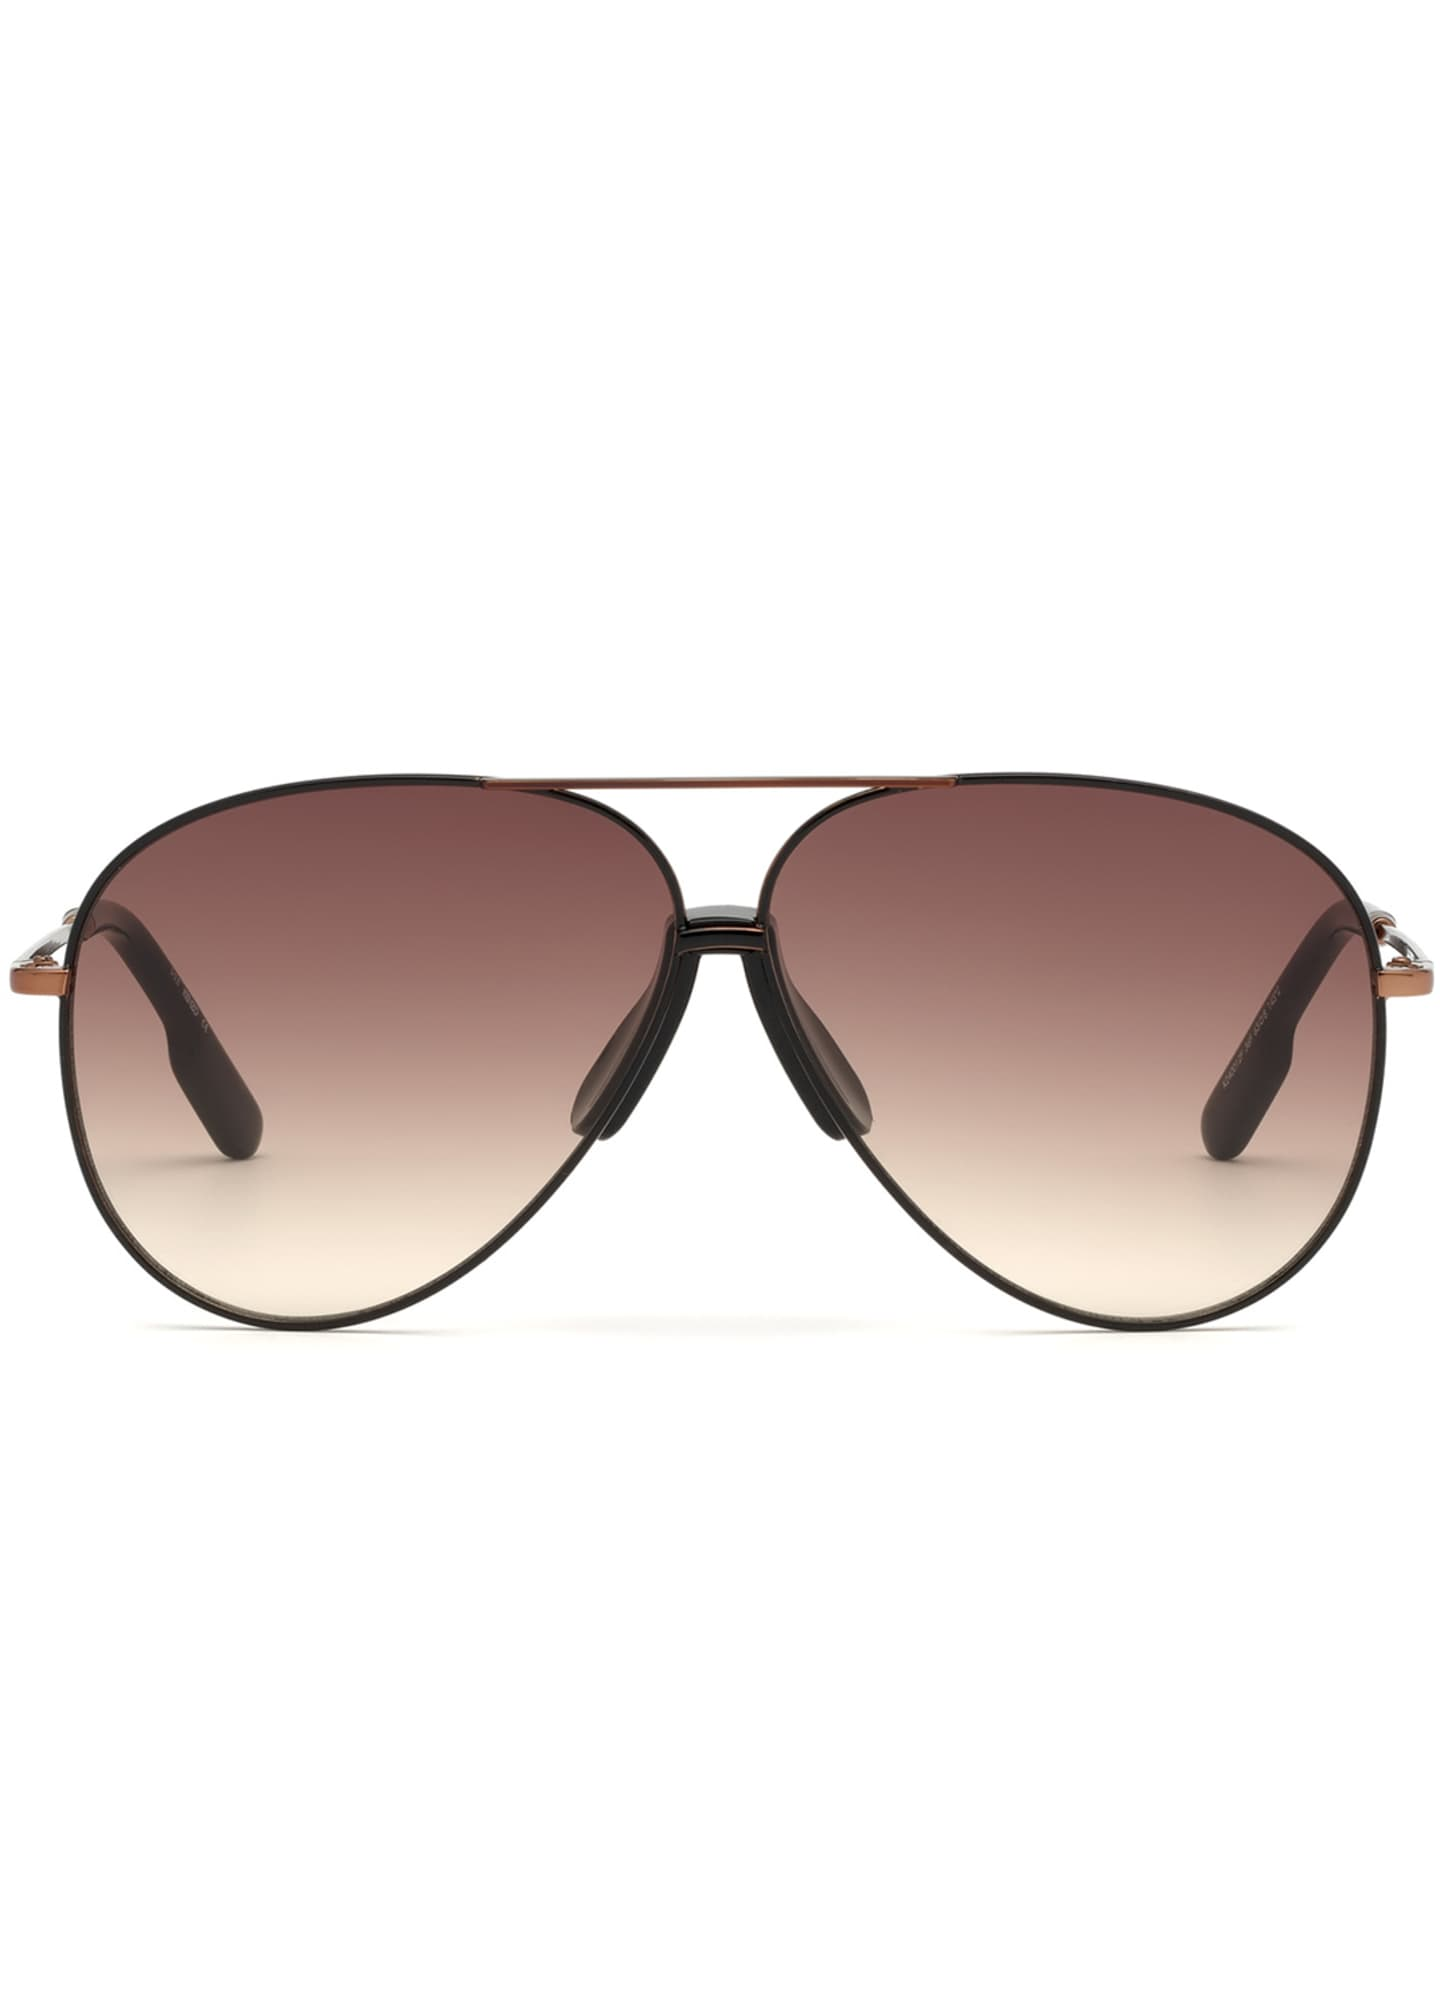 Image 2 of 2: Men's Bronzed Aviator Sunglasses